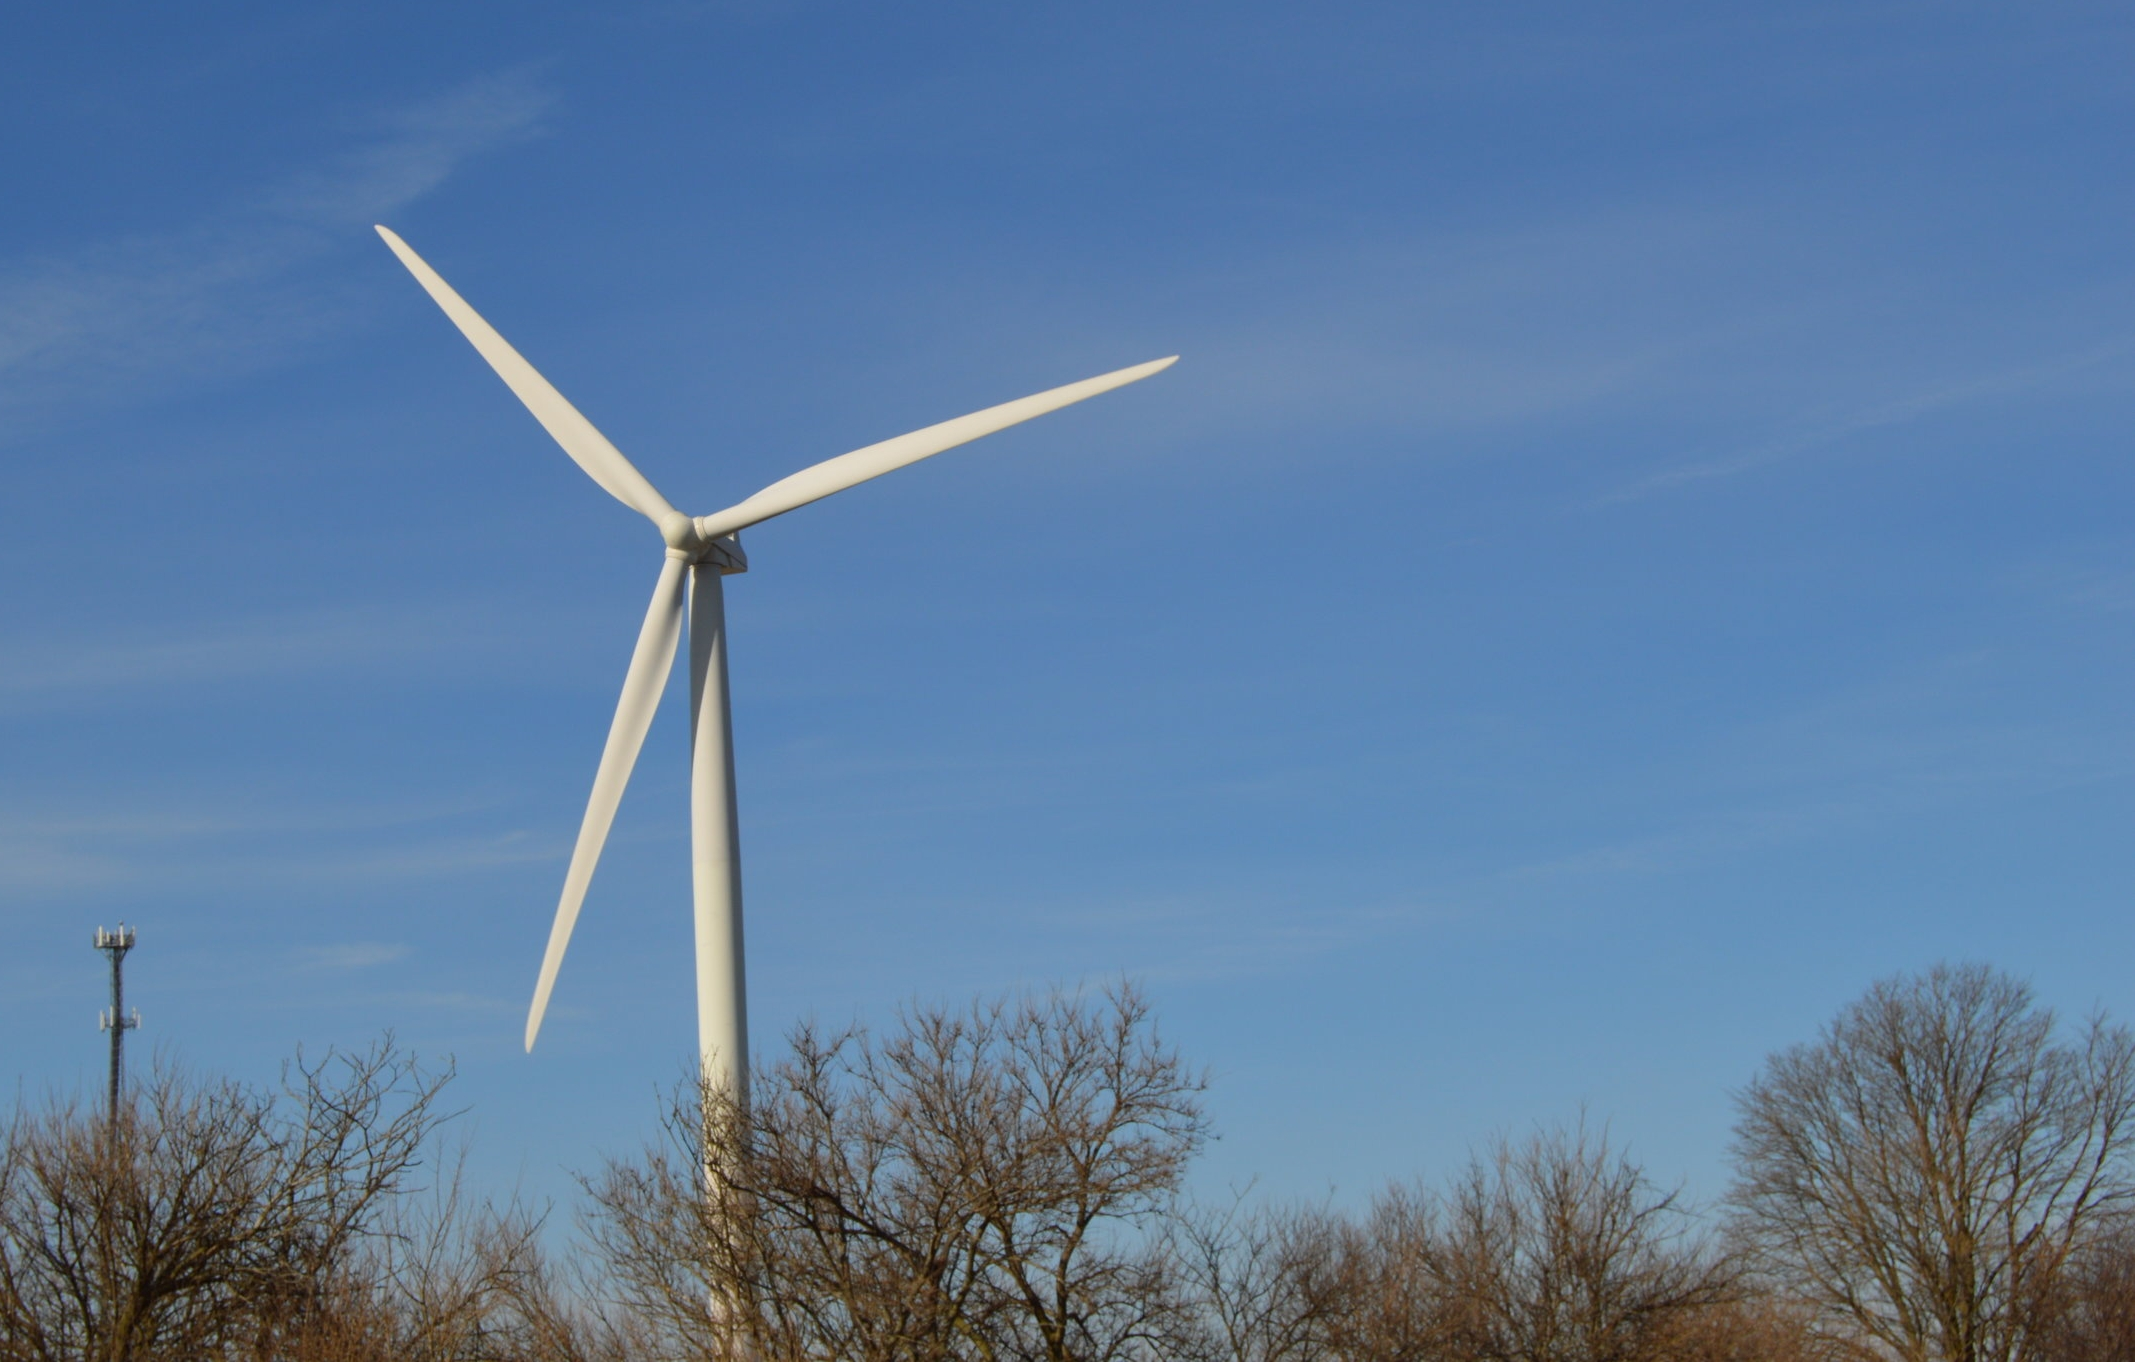 The Proposed Wind Farm Would Power Nearly 70,000 Homes -